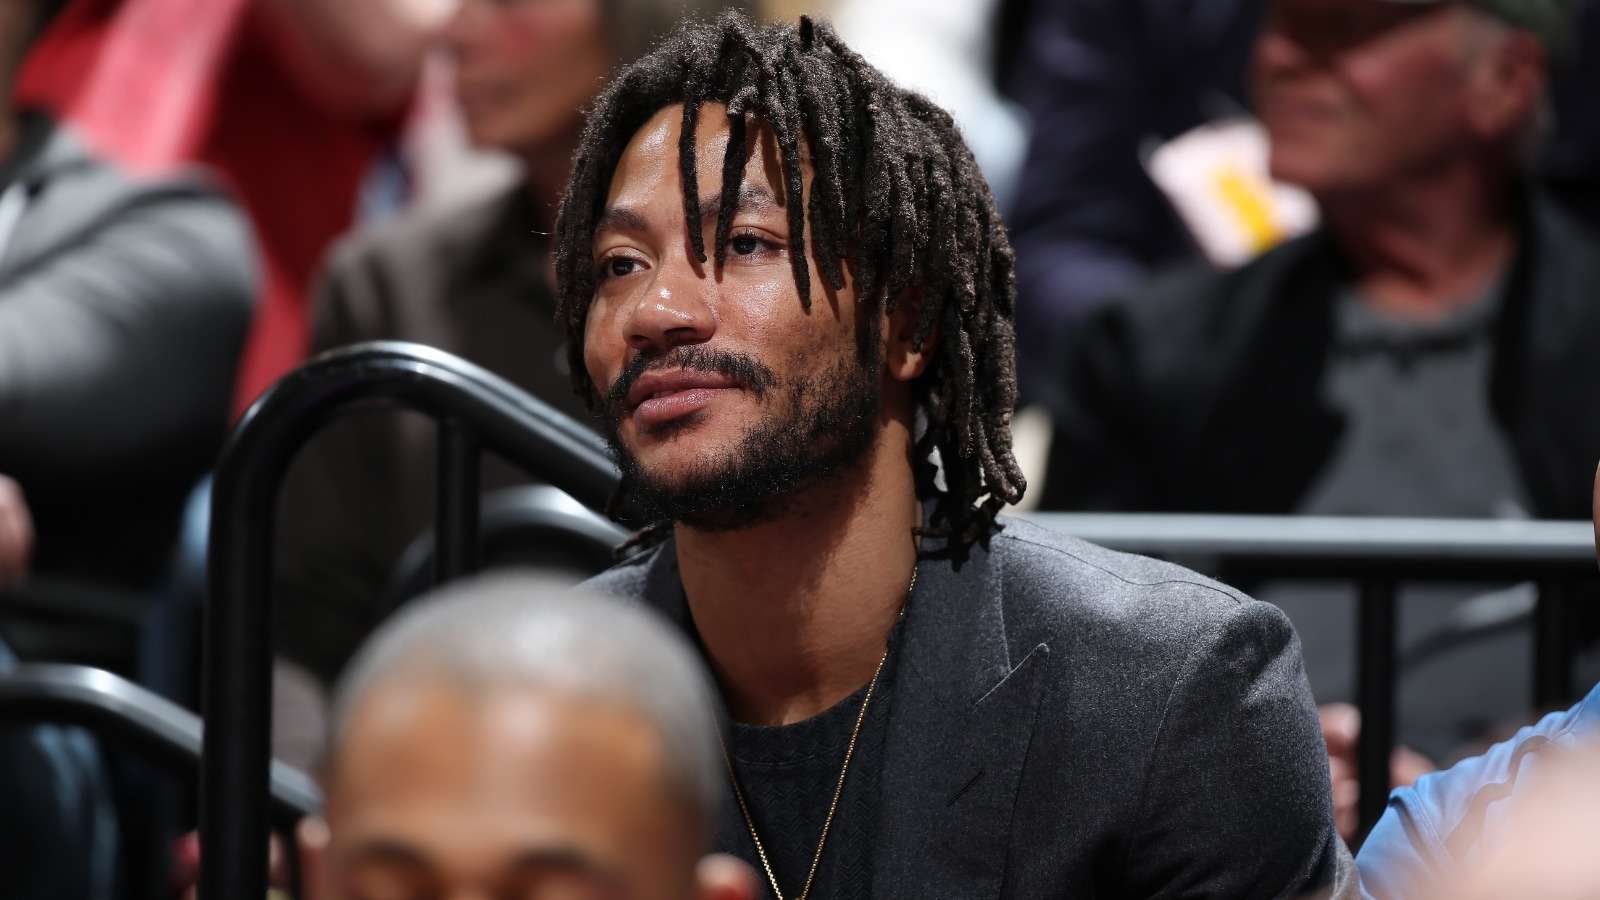 Derrick Rose #25 of the Minnesota Timberwolves smiles against the Golden State Warriors on March 19, 2019 at Target Center in Minneapolis, Minnesota.